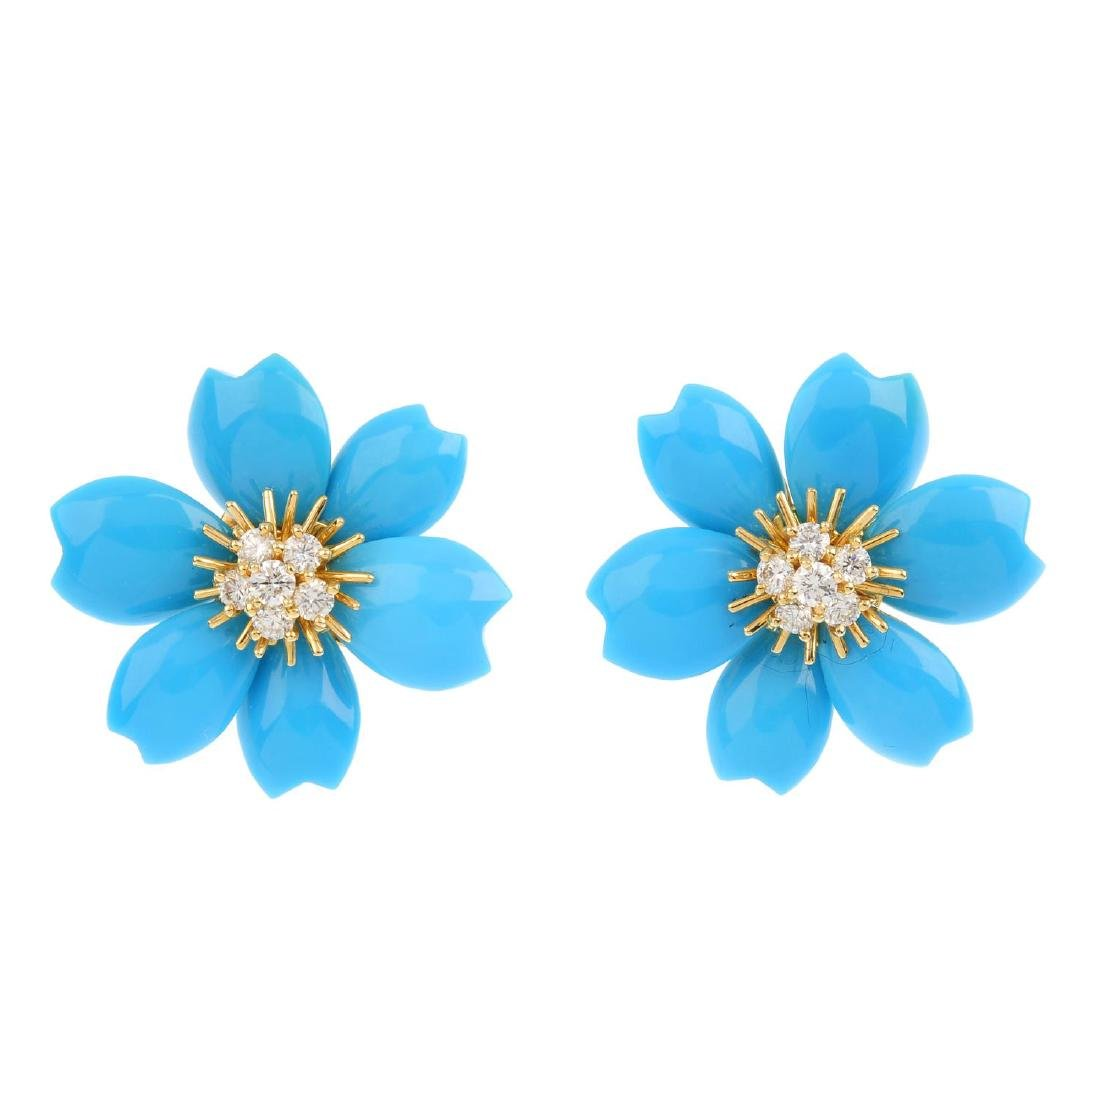 VAN CLEEF & ARPELS - a pair of diamond and turquoise